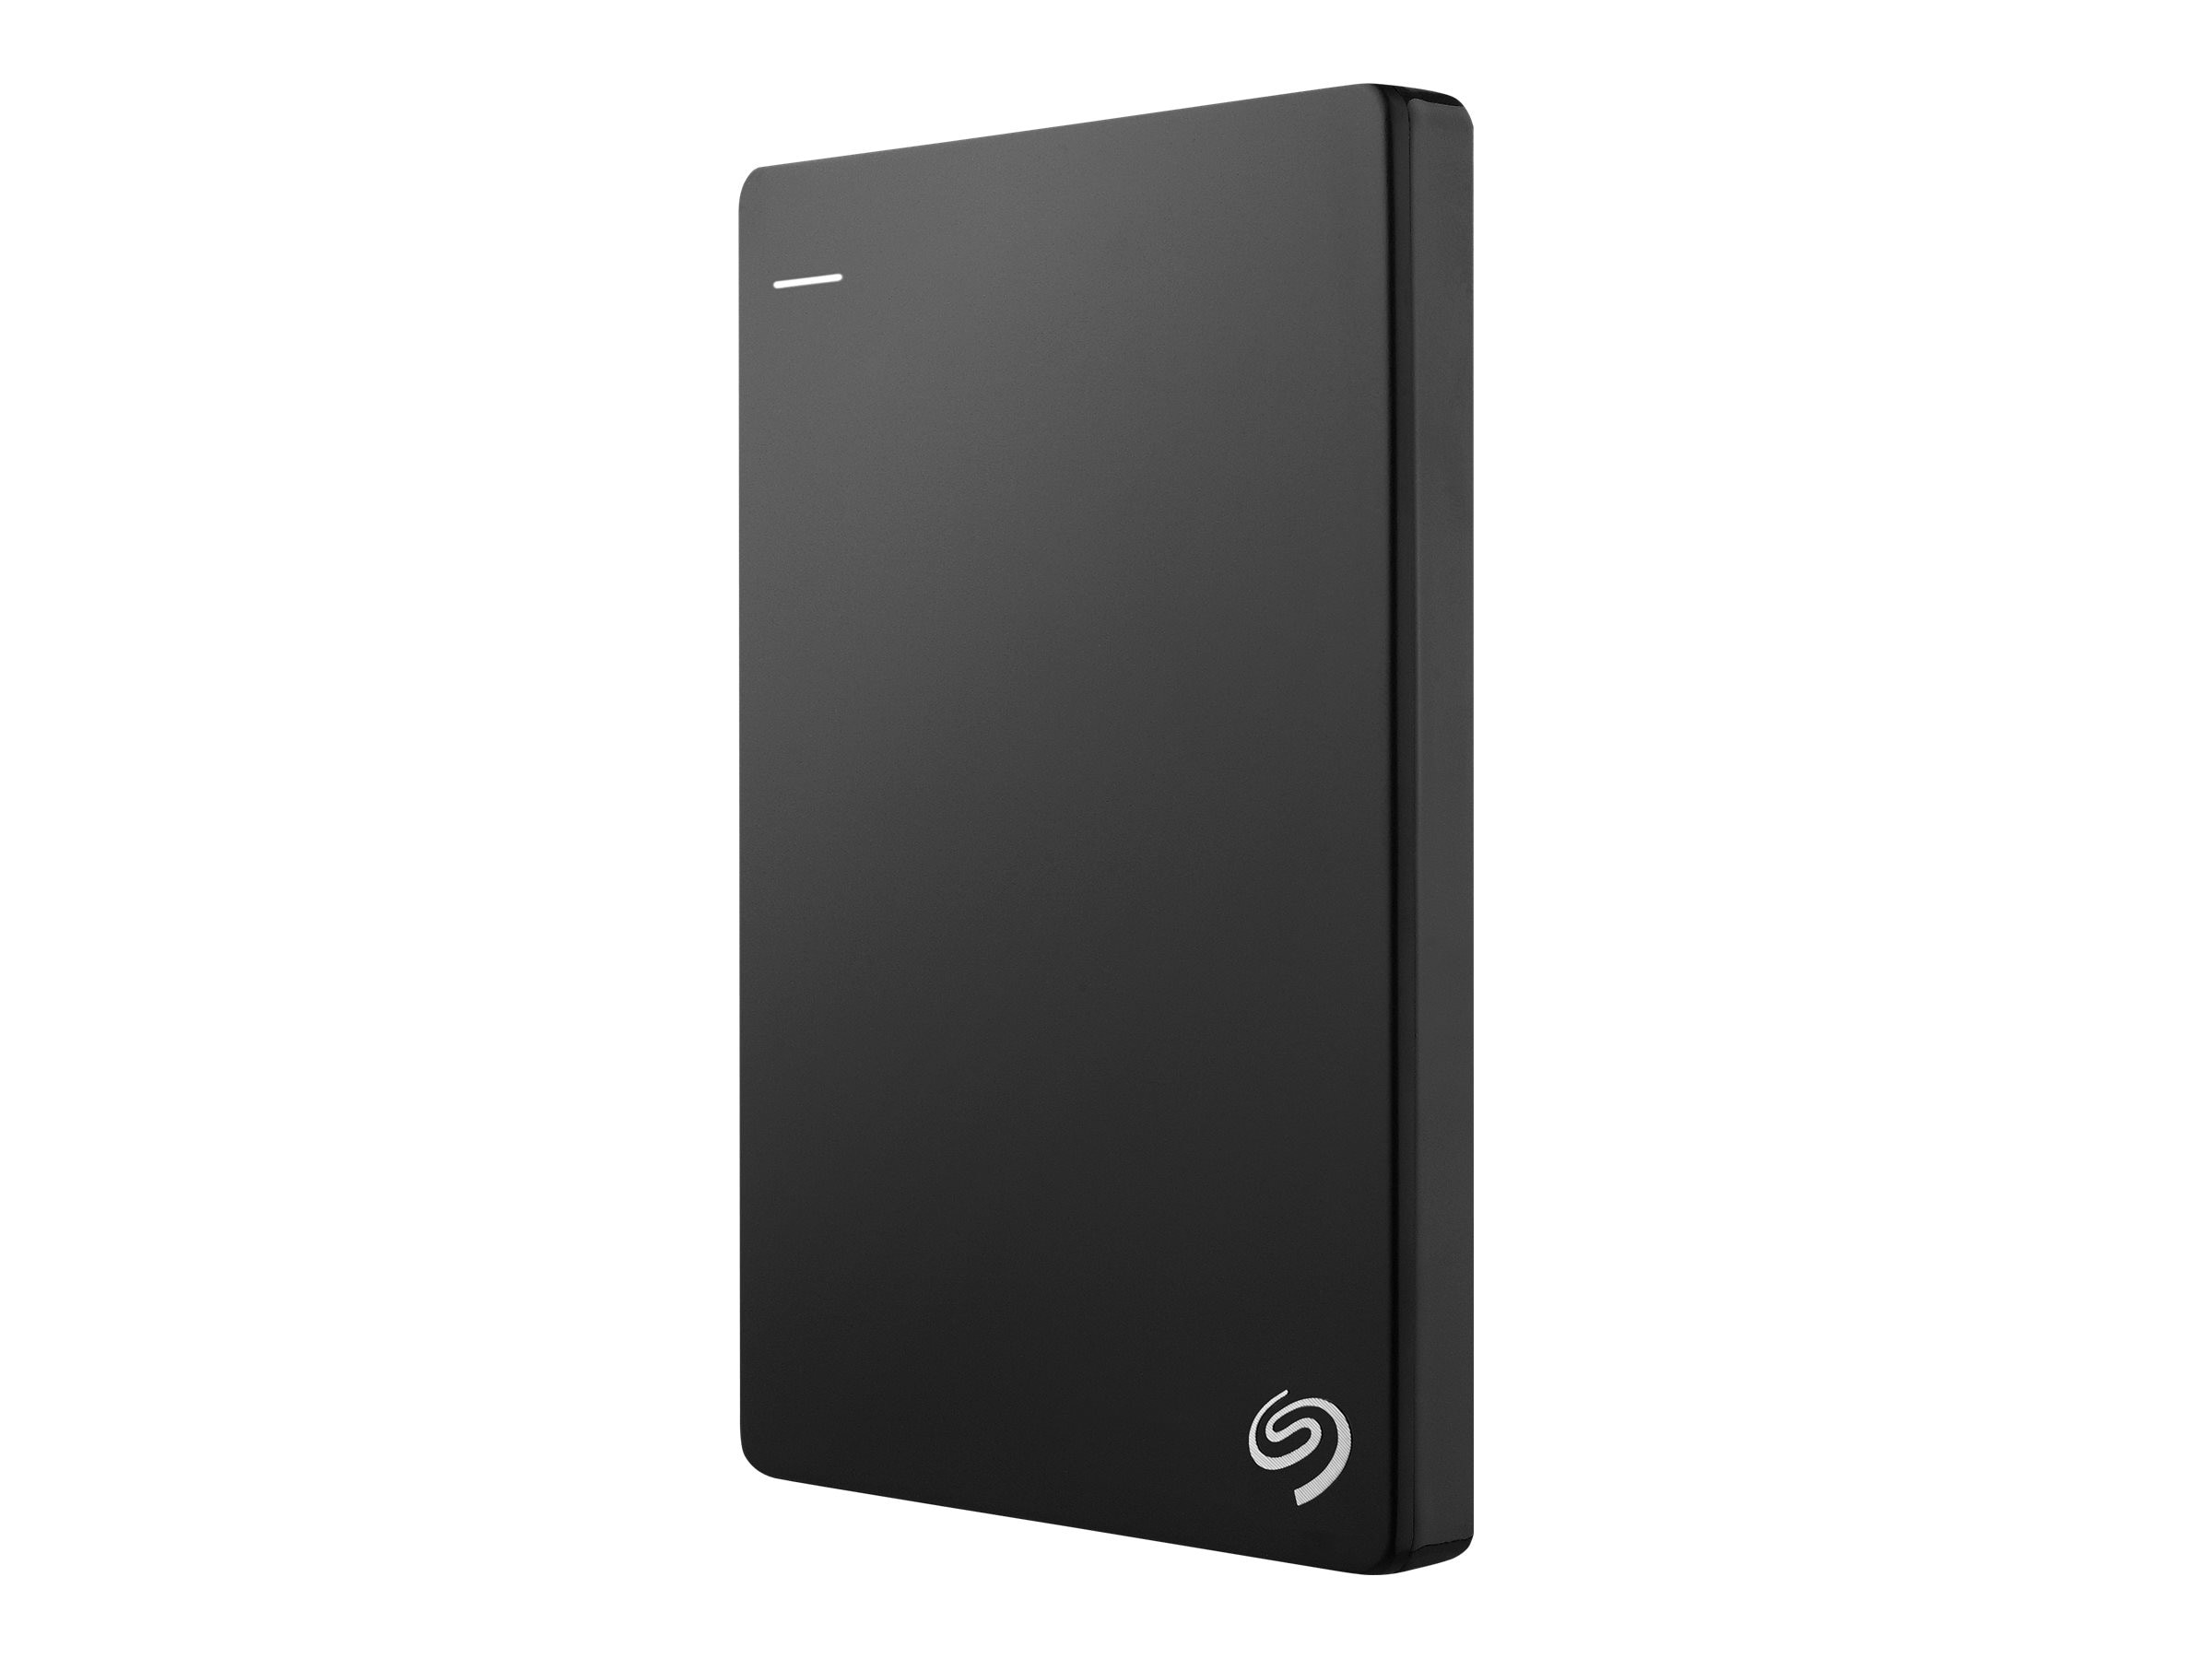 Seagate 4TB Backup Plus USB 3.0 Portable Hard Drive - Black, STDR4000100, 25483951, Hard Drives - External